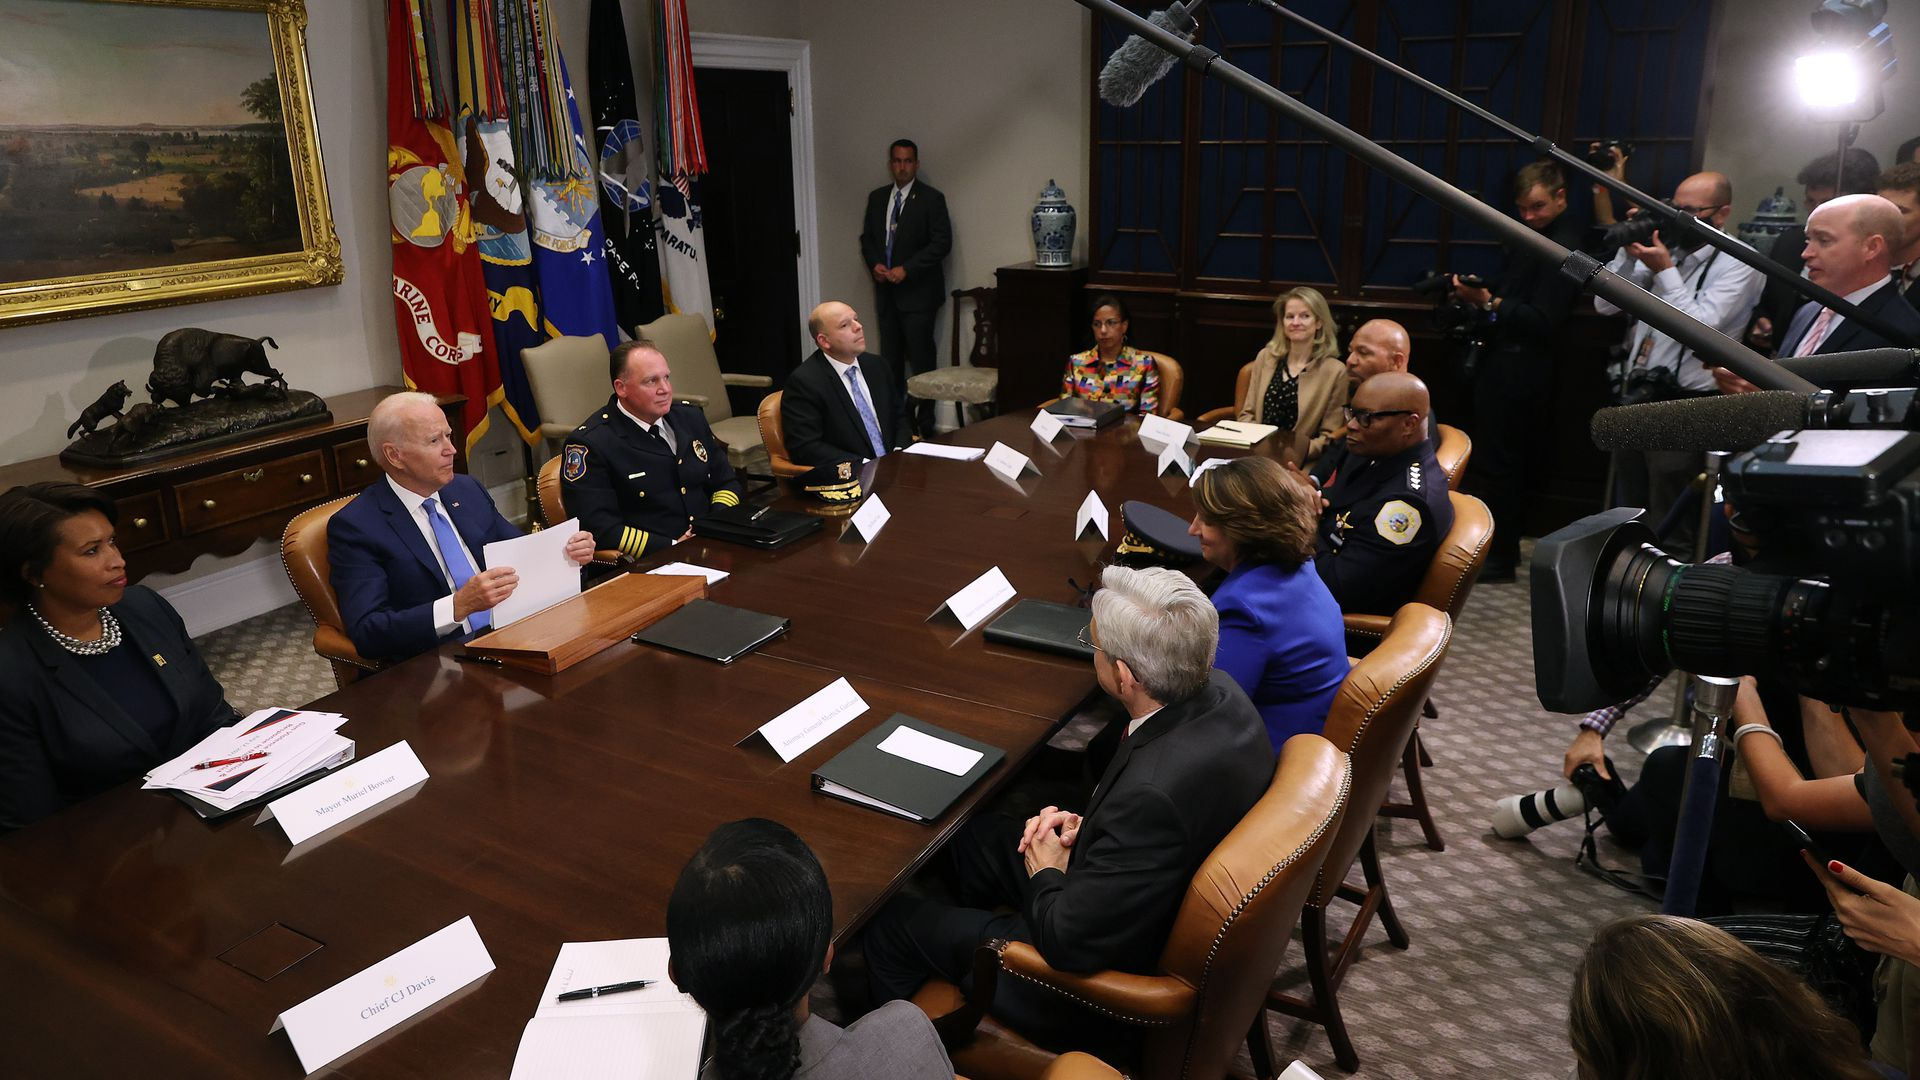 President Biden is seen speaking about Cuba during a meeting focused on gun violence.